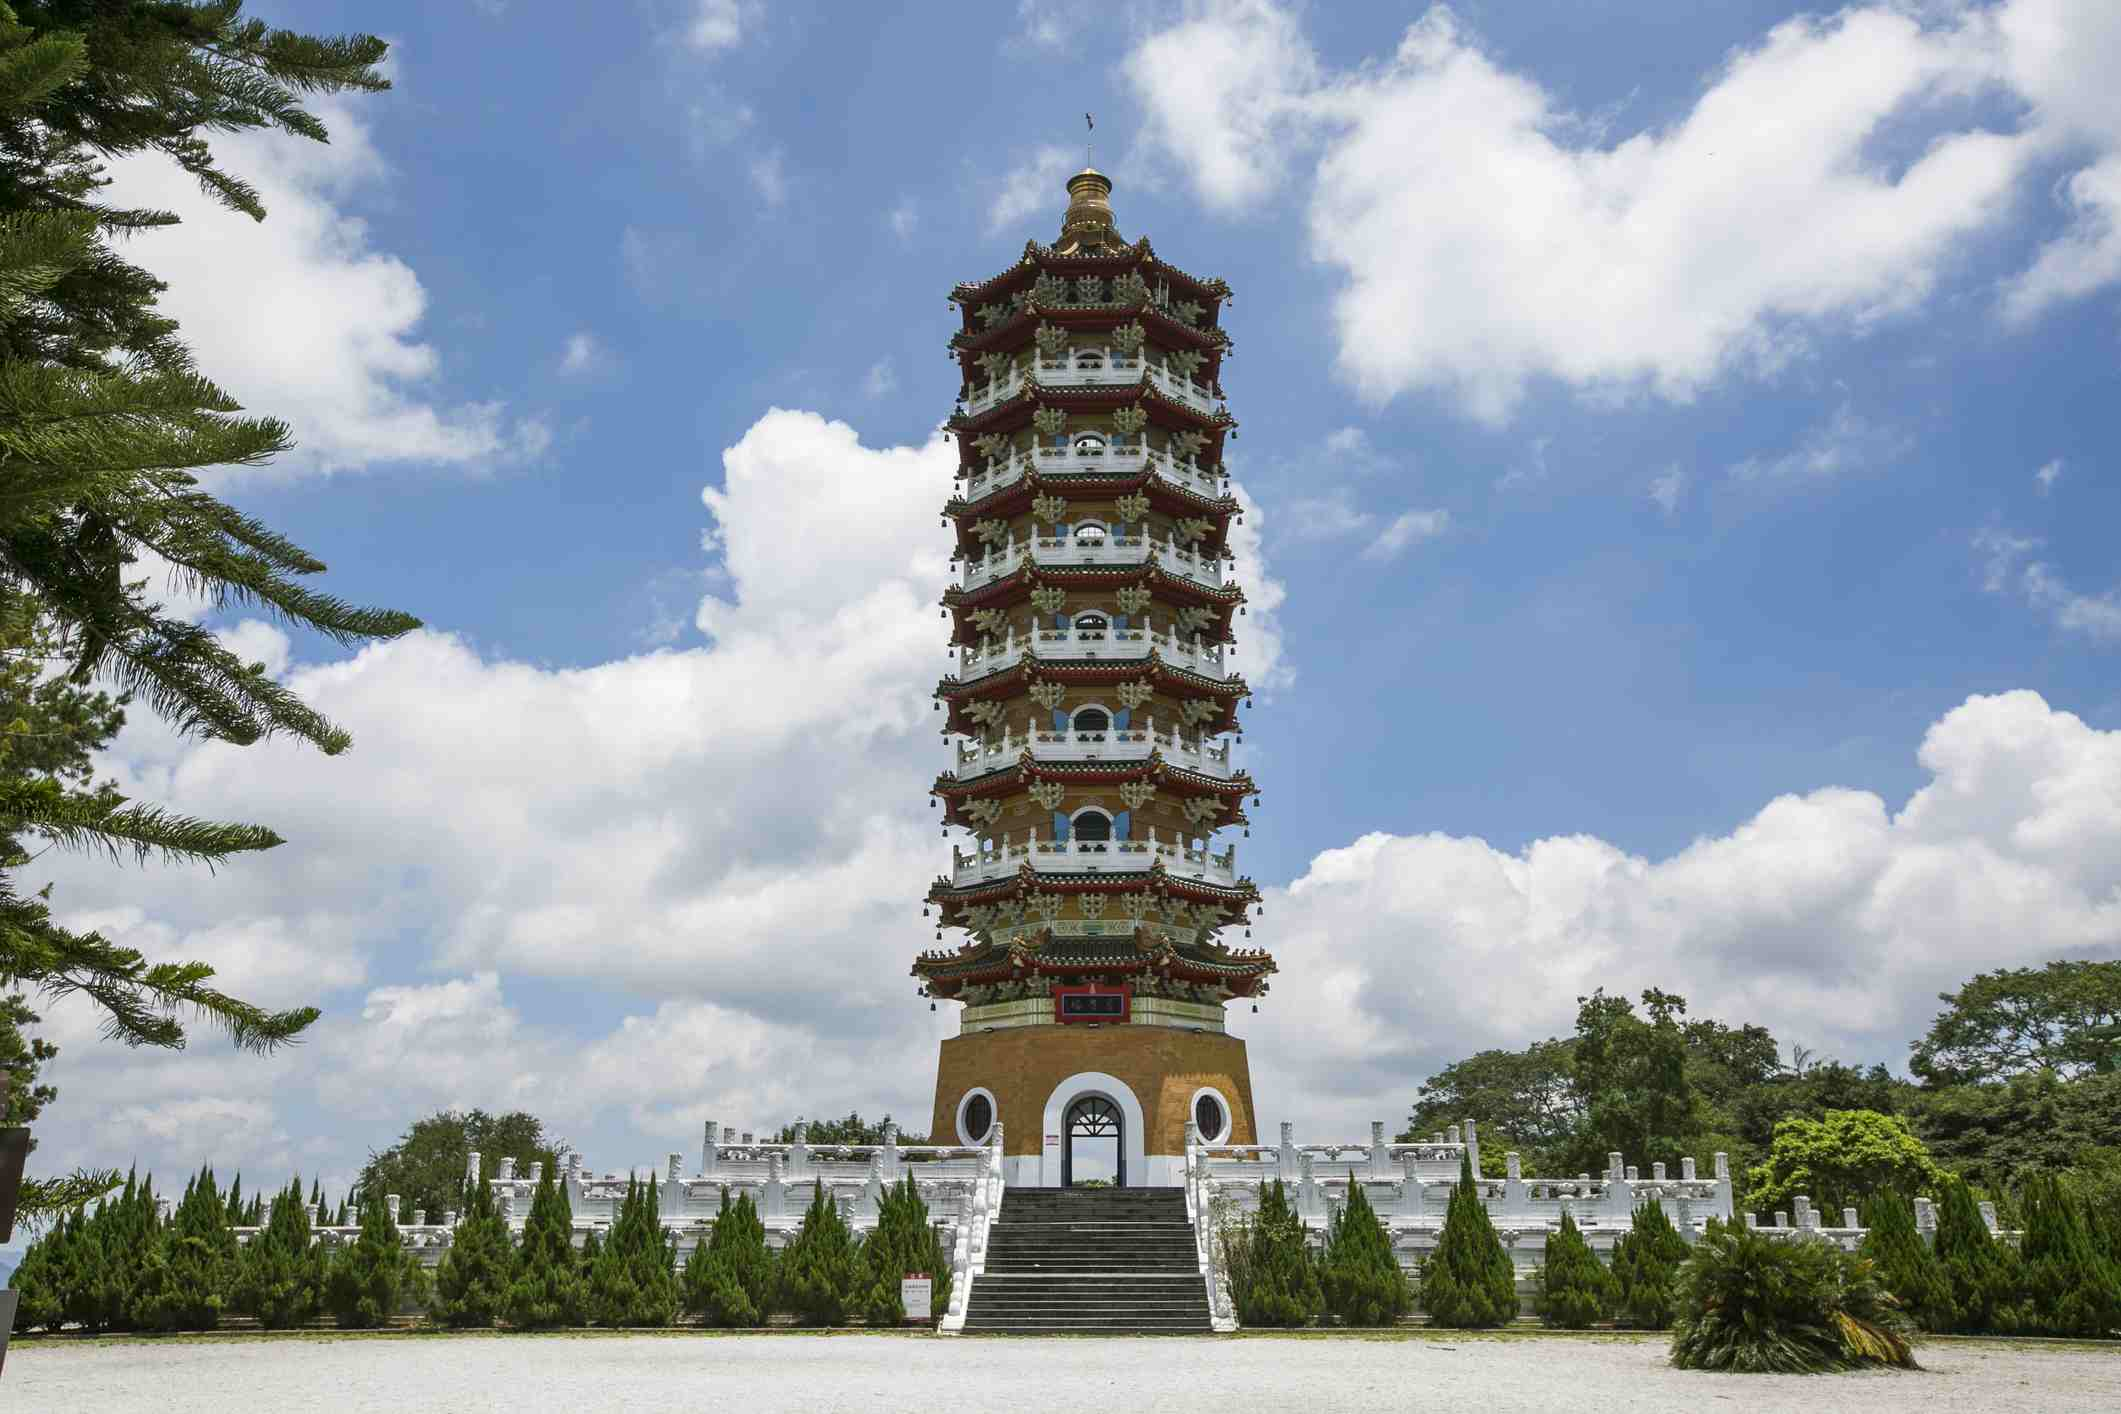 Tower in Historic Nantou